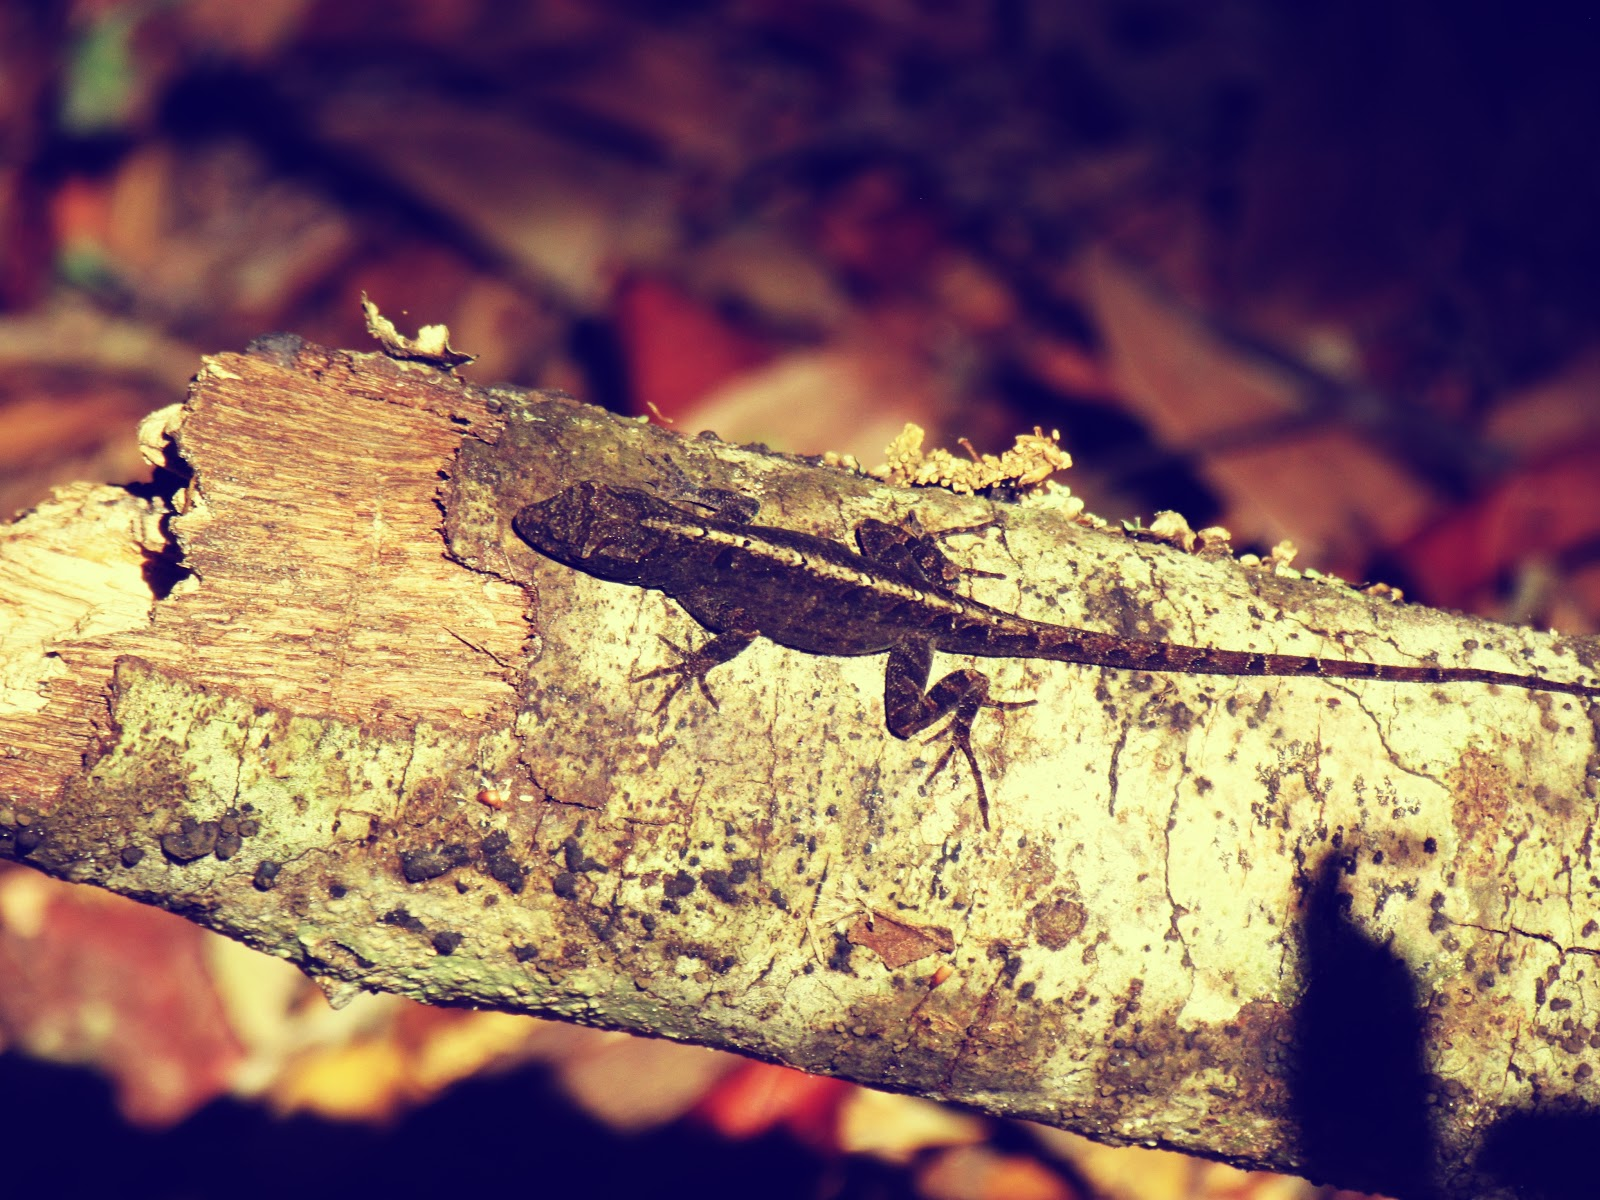 A Lizard on a Tree Branch on an Unseasonably Warm Autumn Day in October